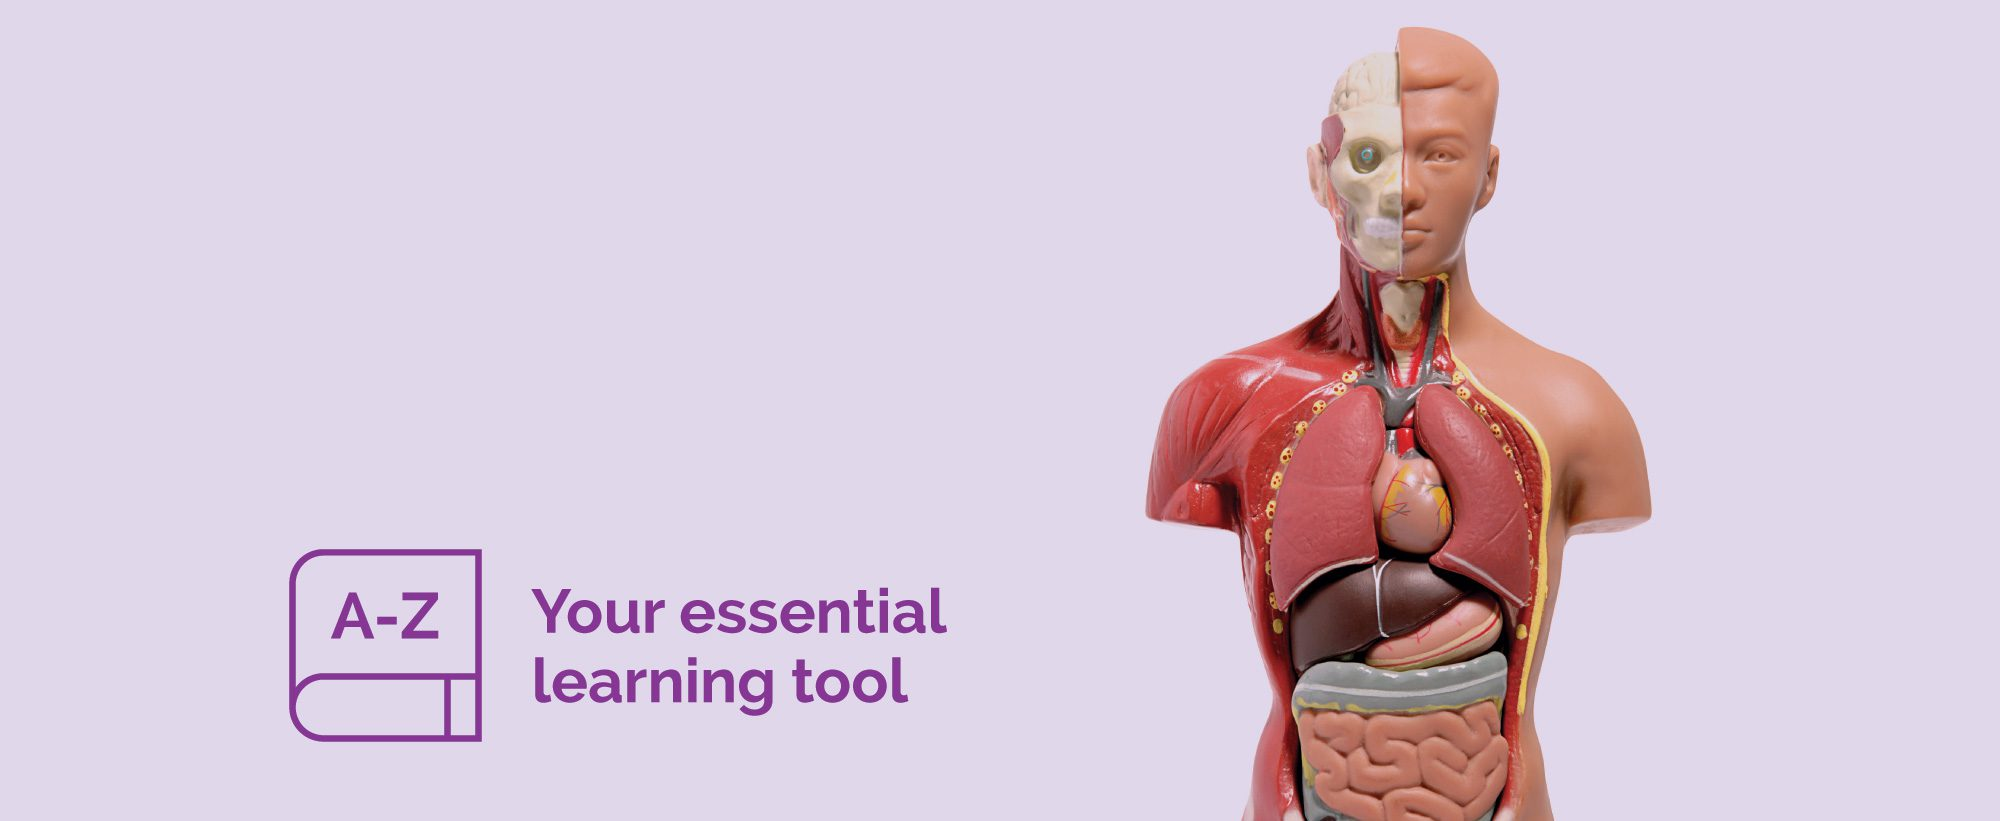 Explore the A-Z of our learning